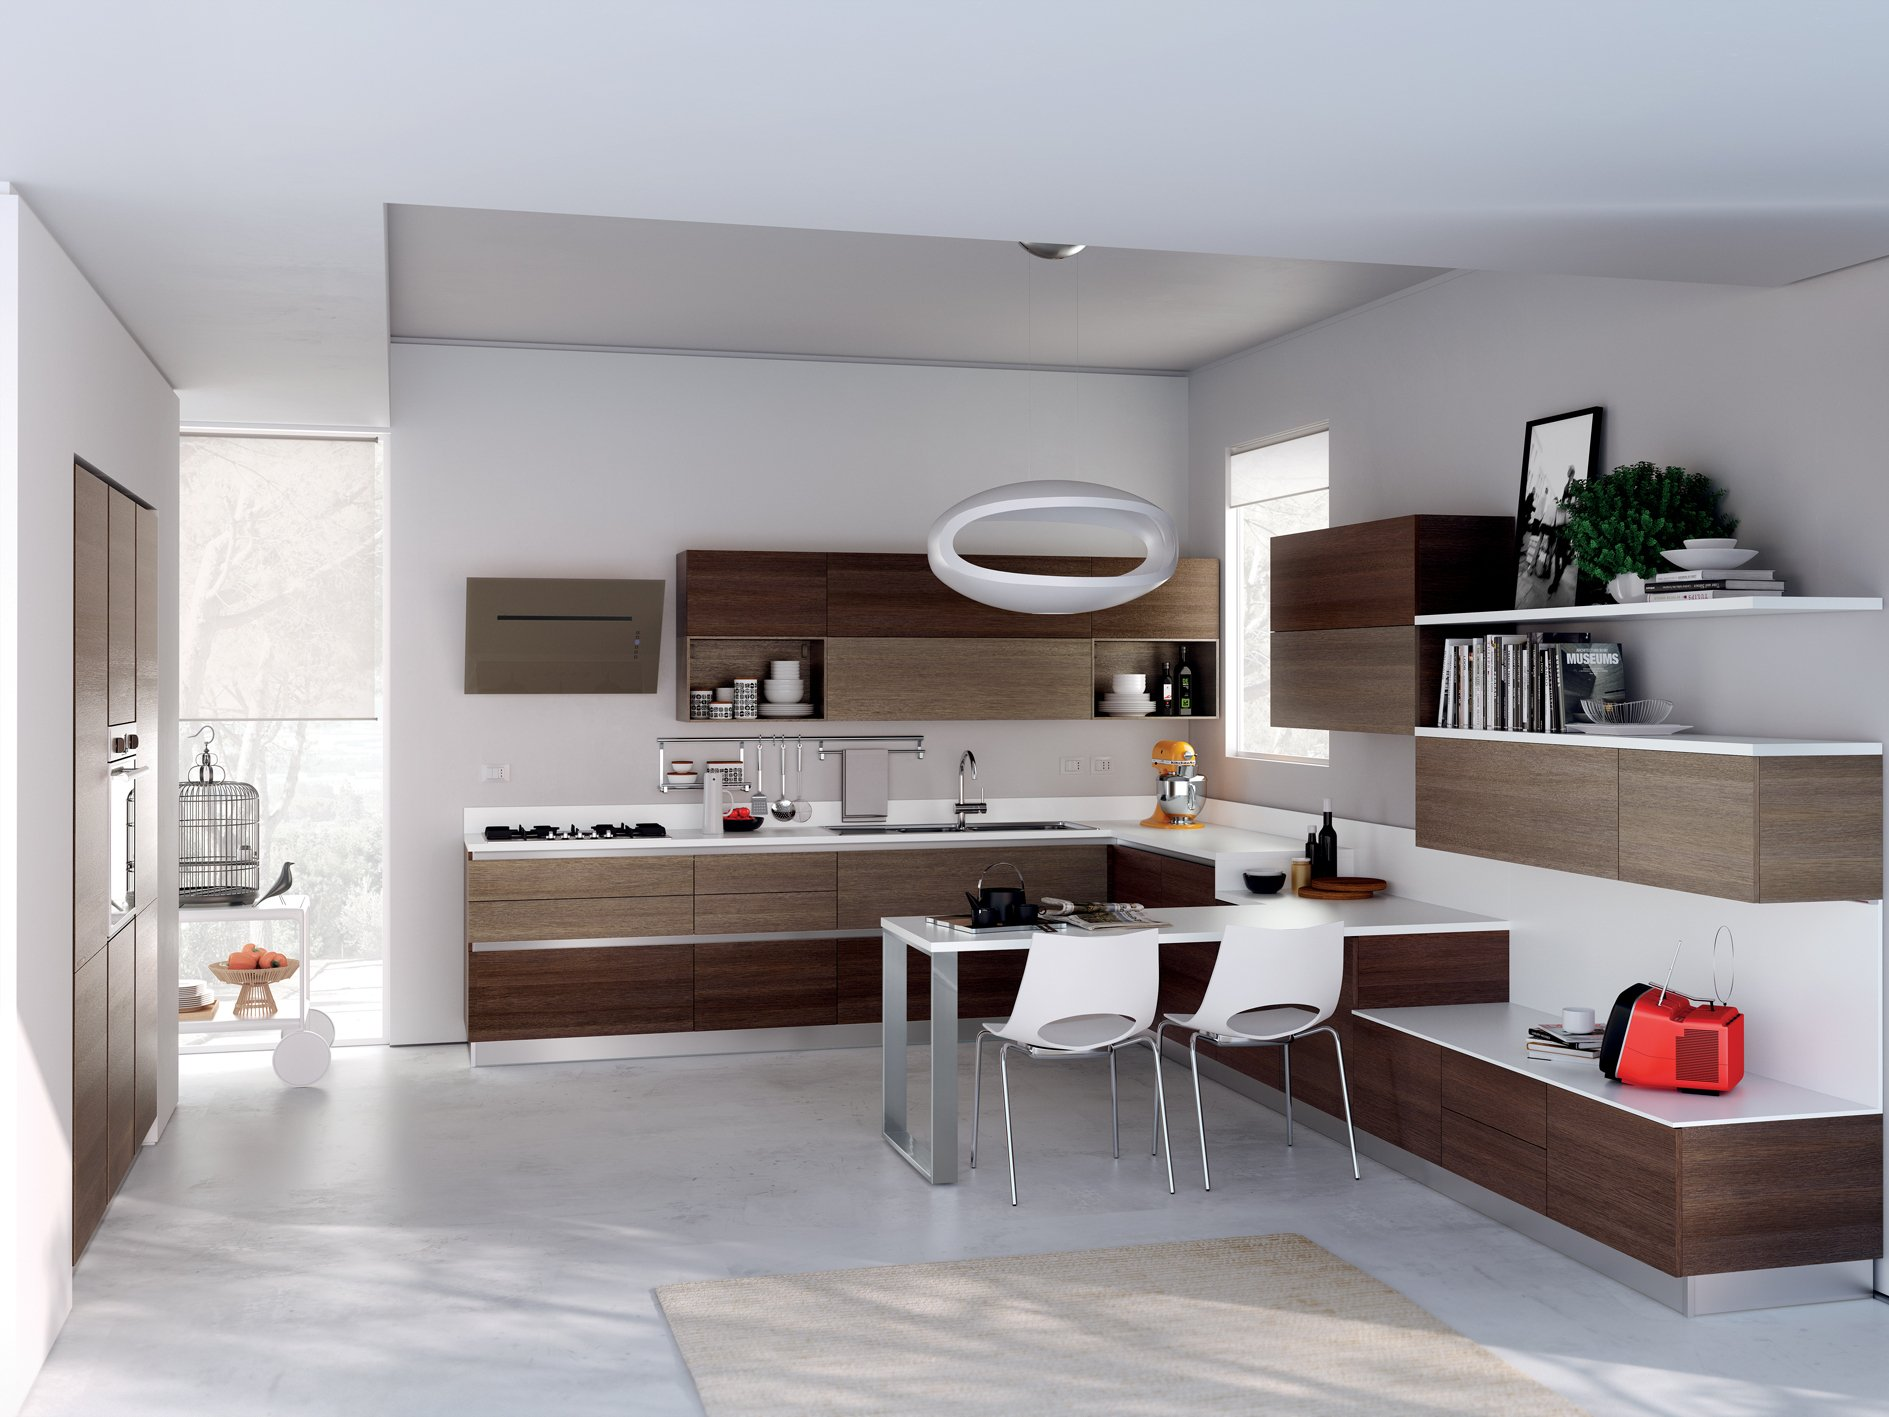 Cucina componibile evolution linea scavolini basic by for Piccole cucine con penisola